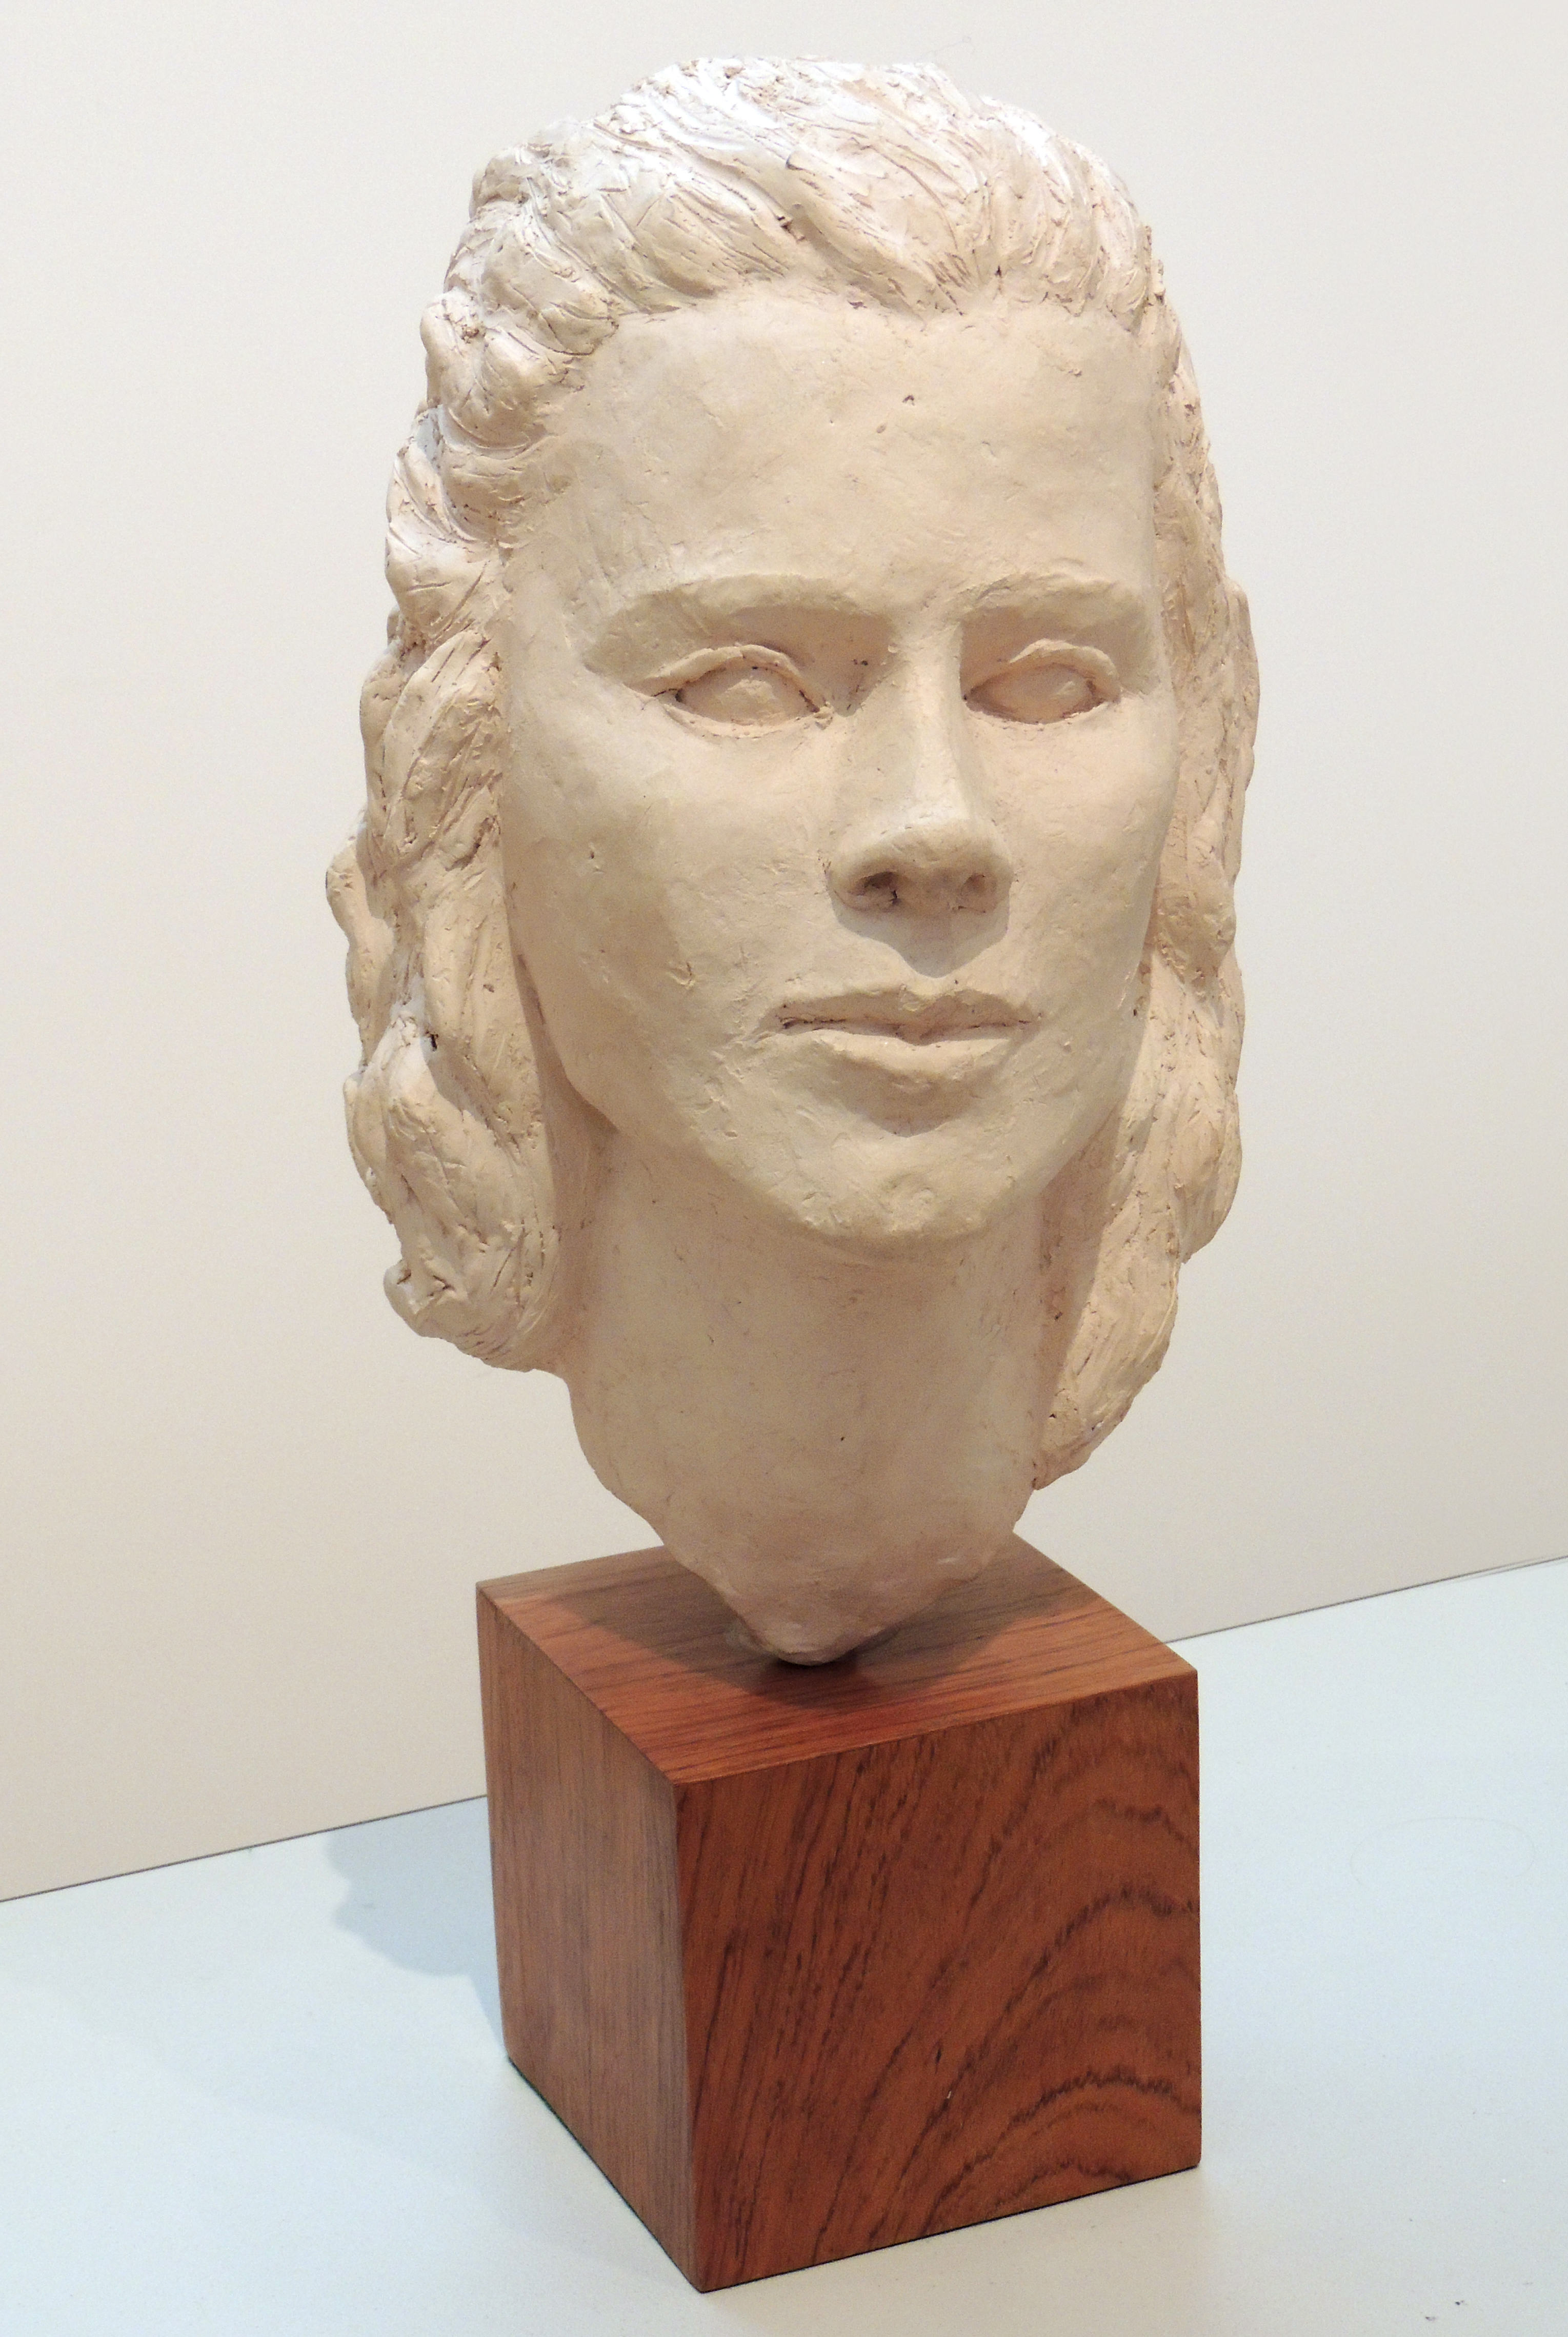 Jane Hollenbeck | FEMALE BUST | clay | undated | Donated by Peter Hollenbeck